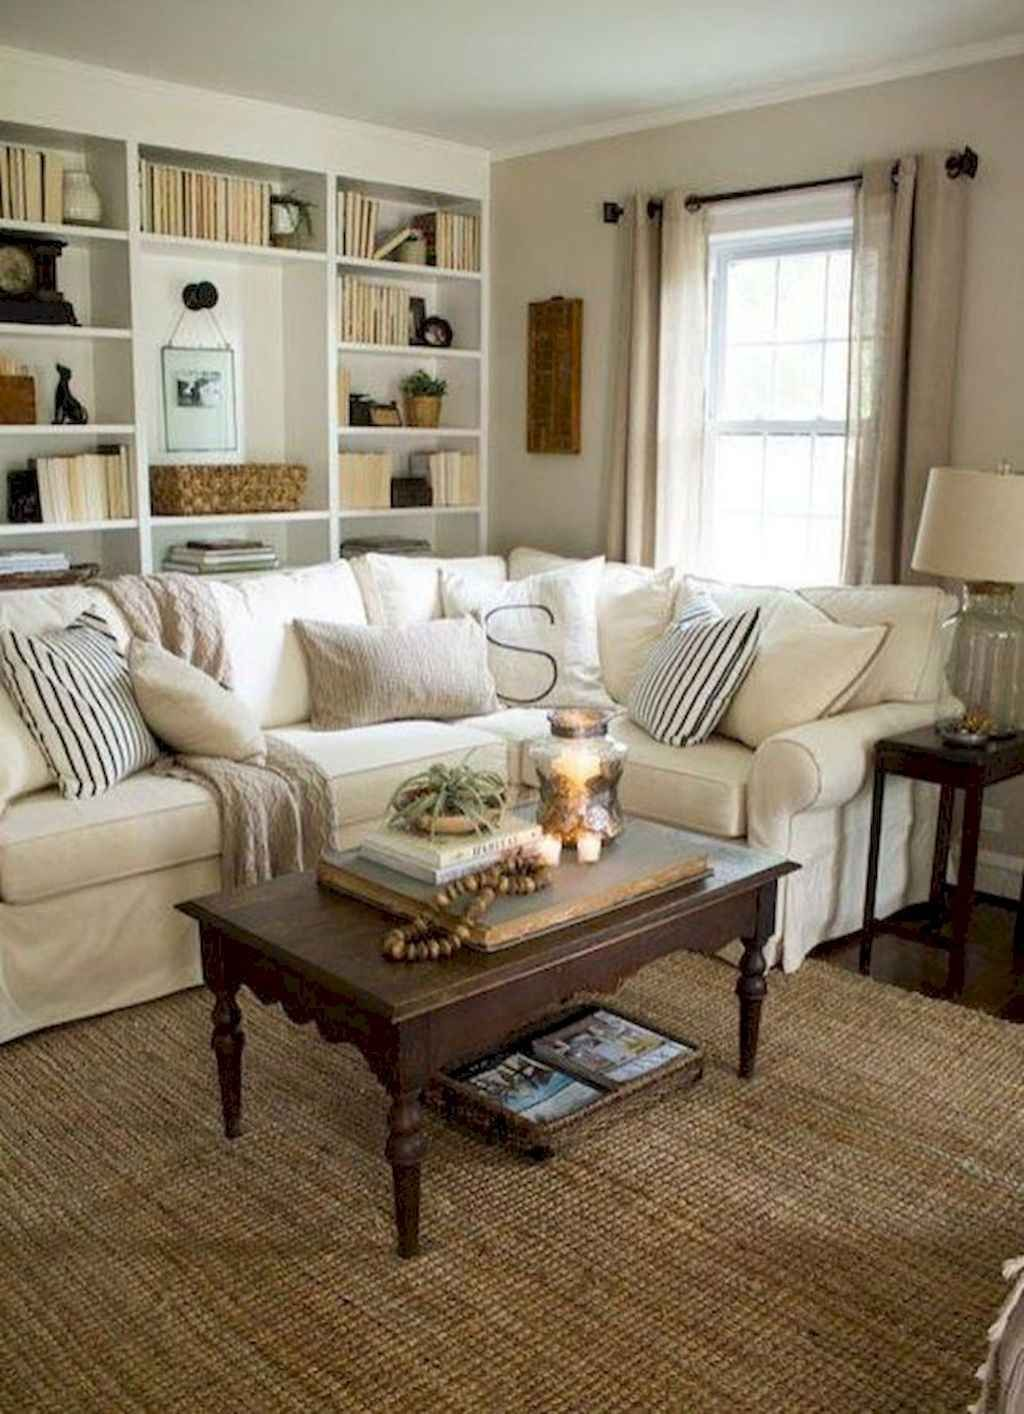 19 Incredible French Country Living Room Decor Ideas Country Living Room Design French Country Living Room Country Living Room